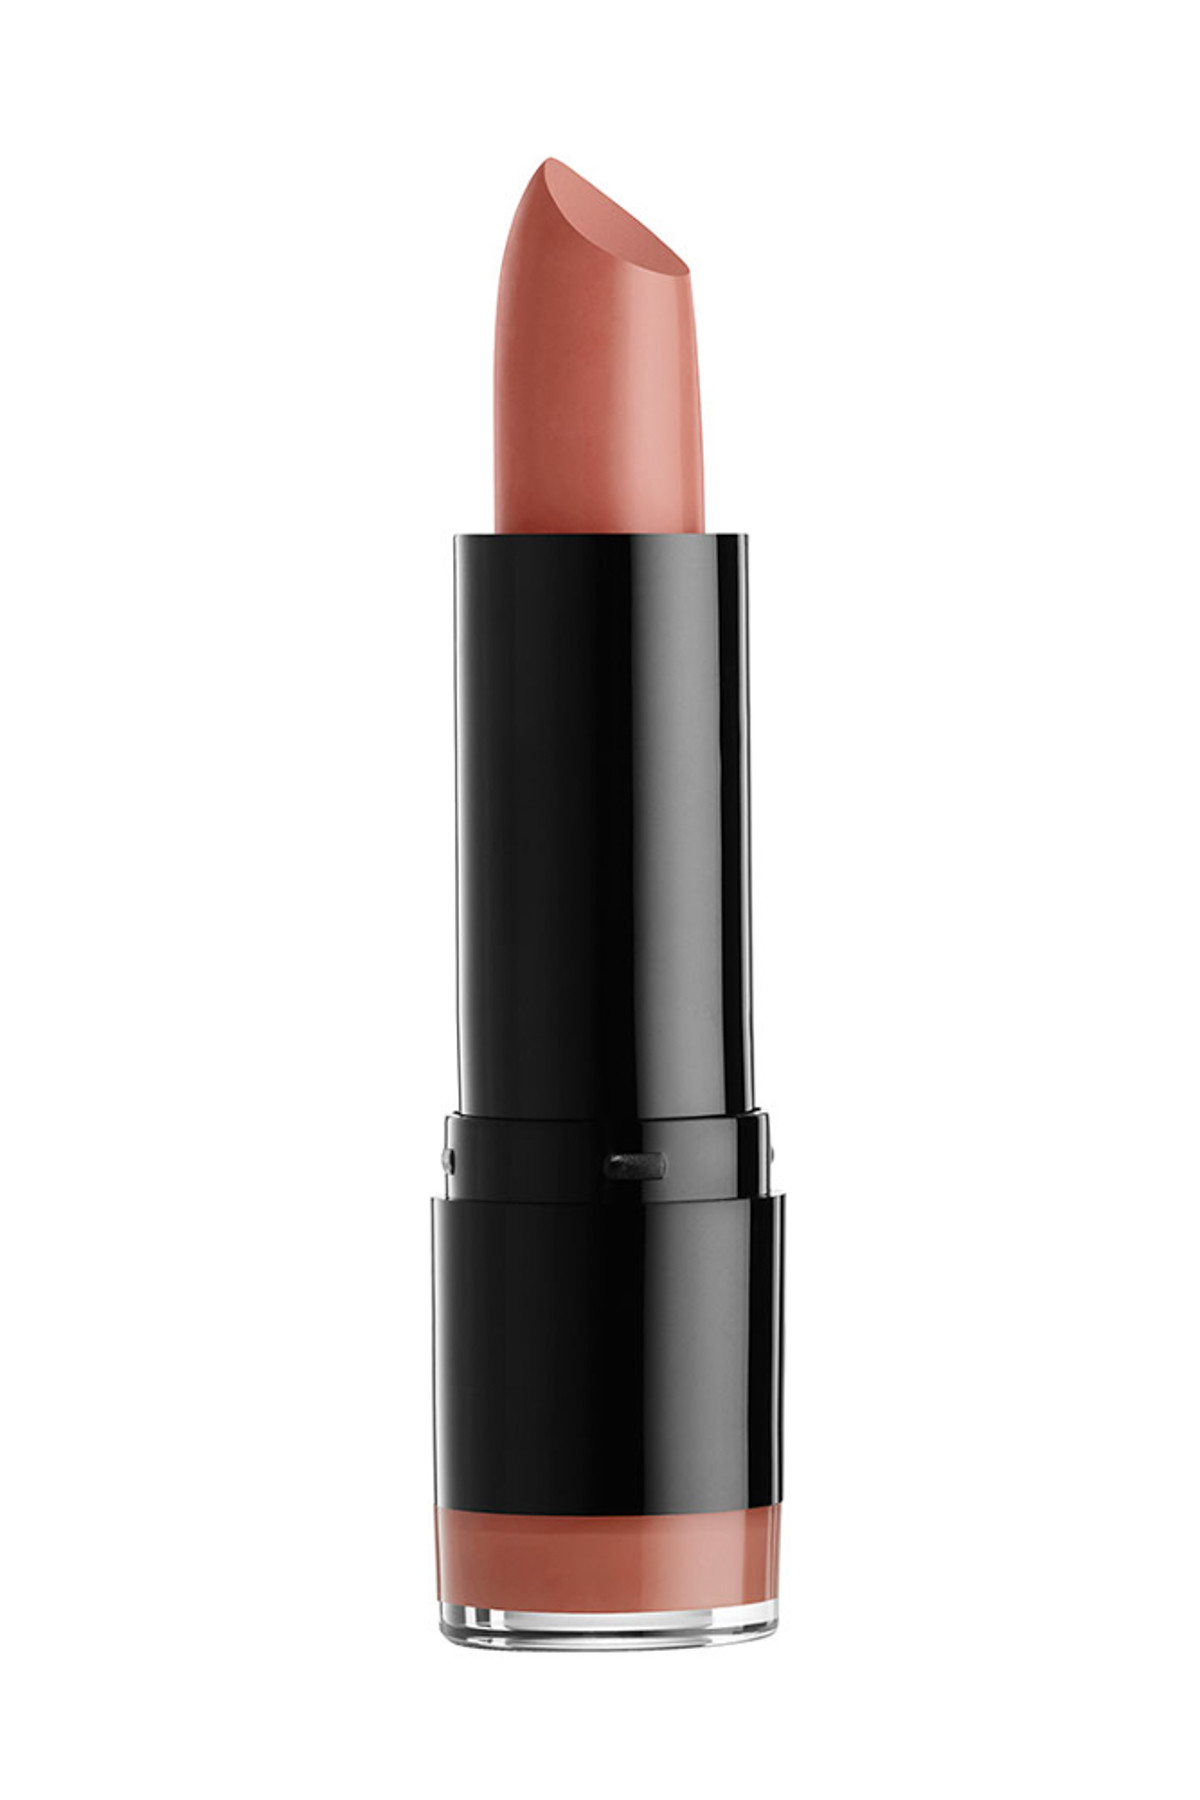 Nyx Professional Makeup Ruj – Extra Creamy Round Lipstick Cocoa 16 G 800897116095 – 28.0 TL